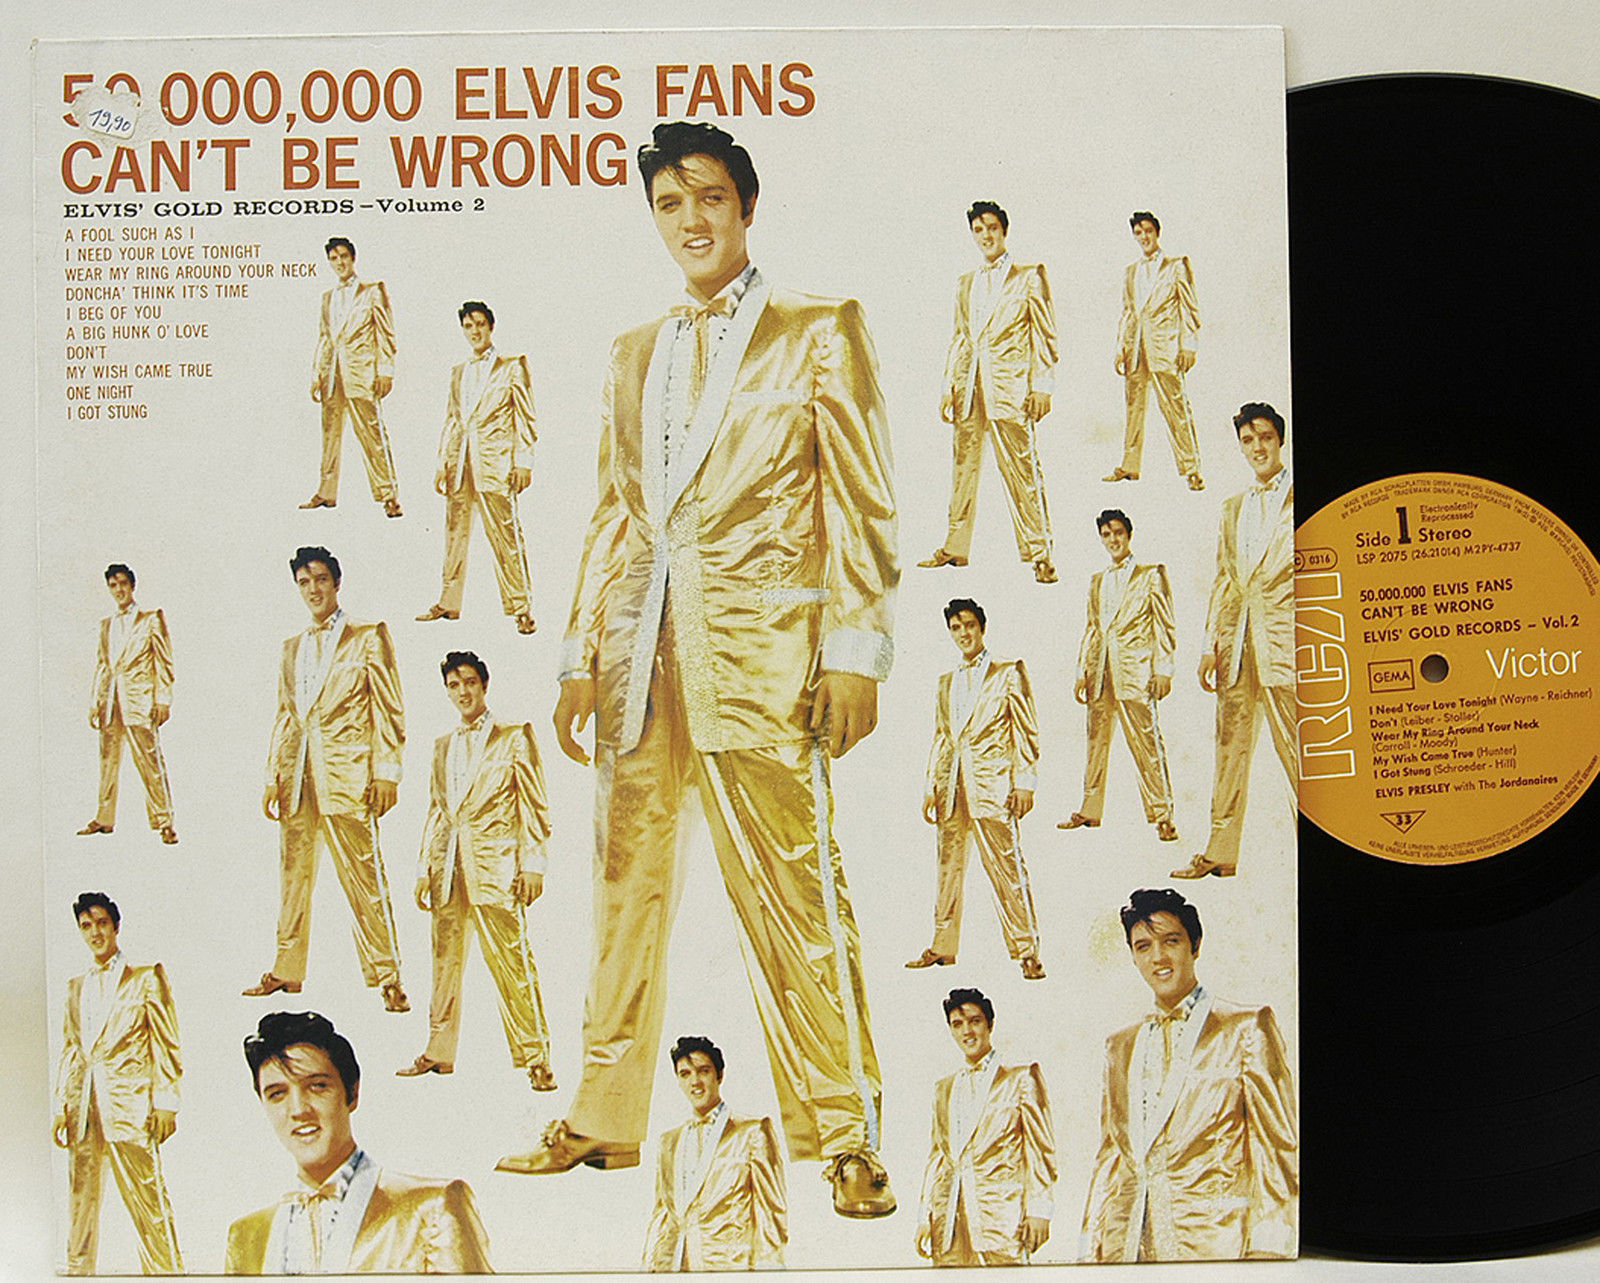 50,000,000 Elvis Fans Can't Be Wrong Album Cover